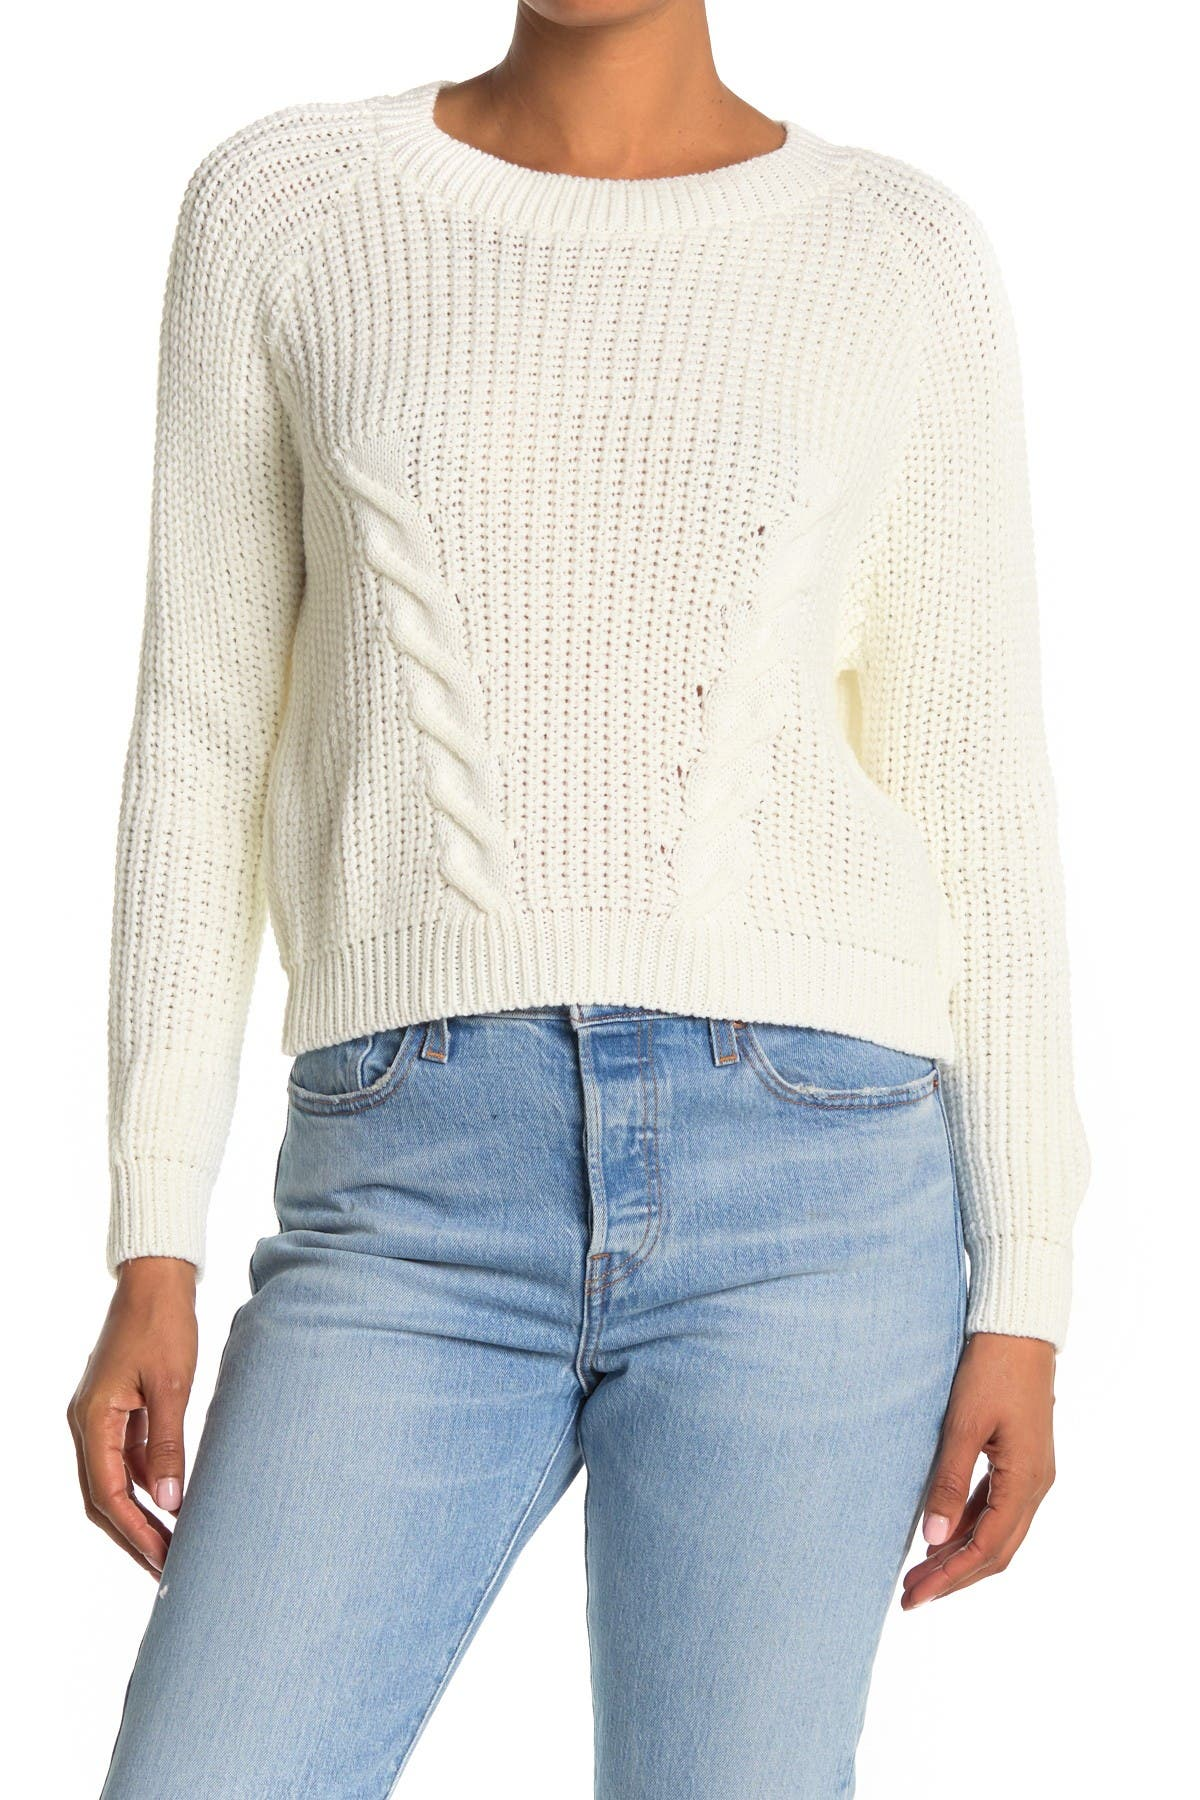 Image of Cotton Emporium Cable Knit Pullover Sweater